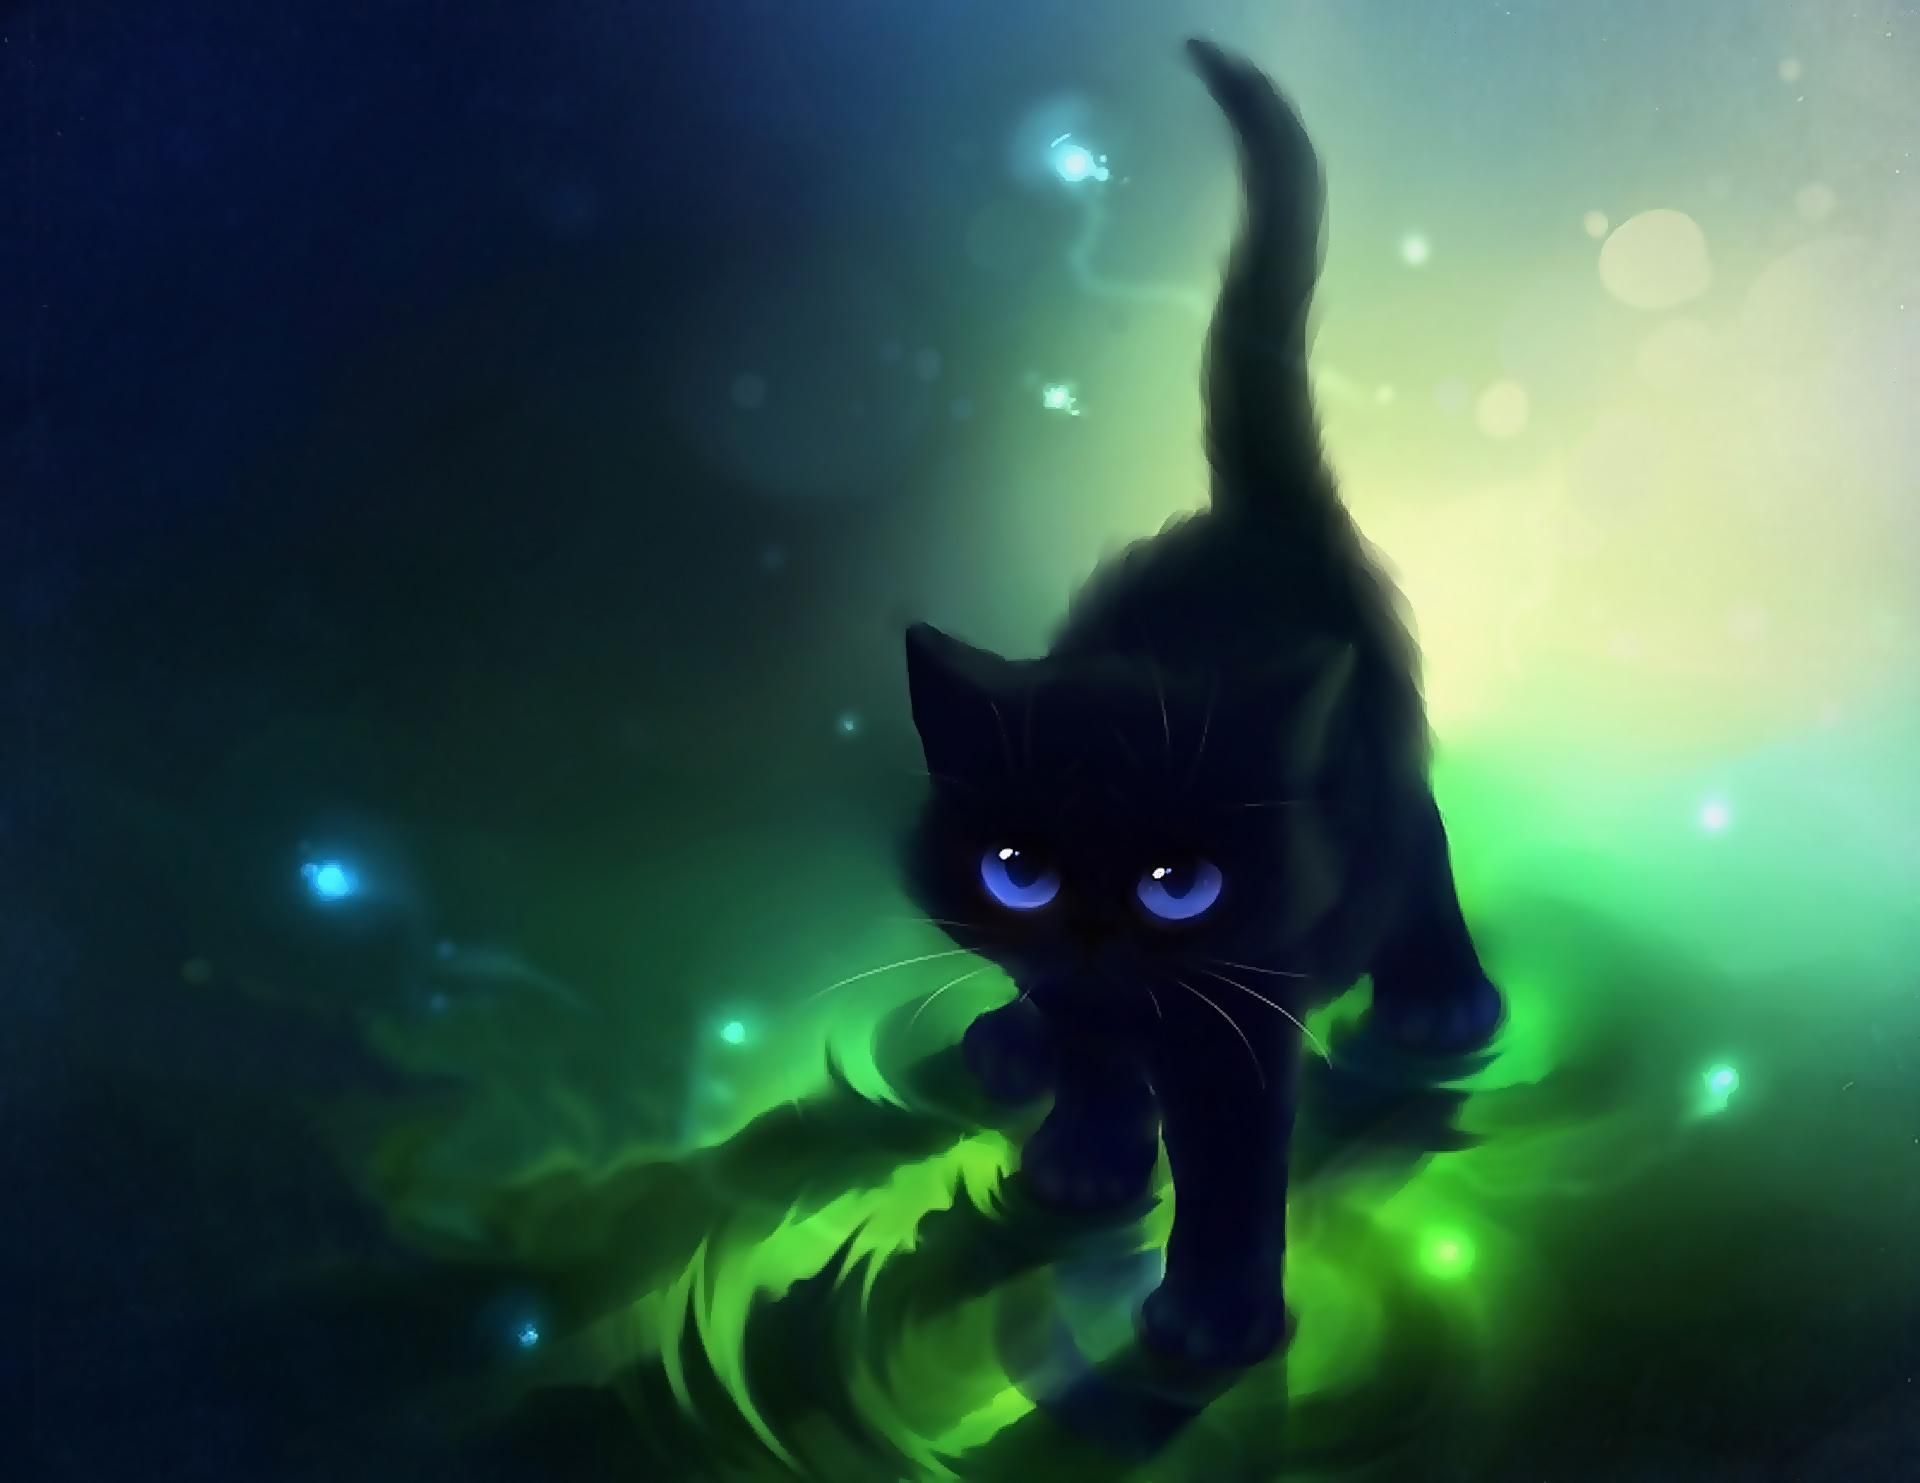 Images For Cute Anime Cat Wallpapers Anime Black Cat Background 1920x1483 Wallpaper Teahub Io